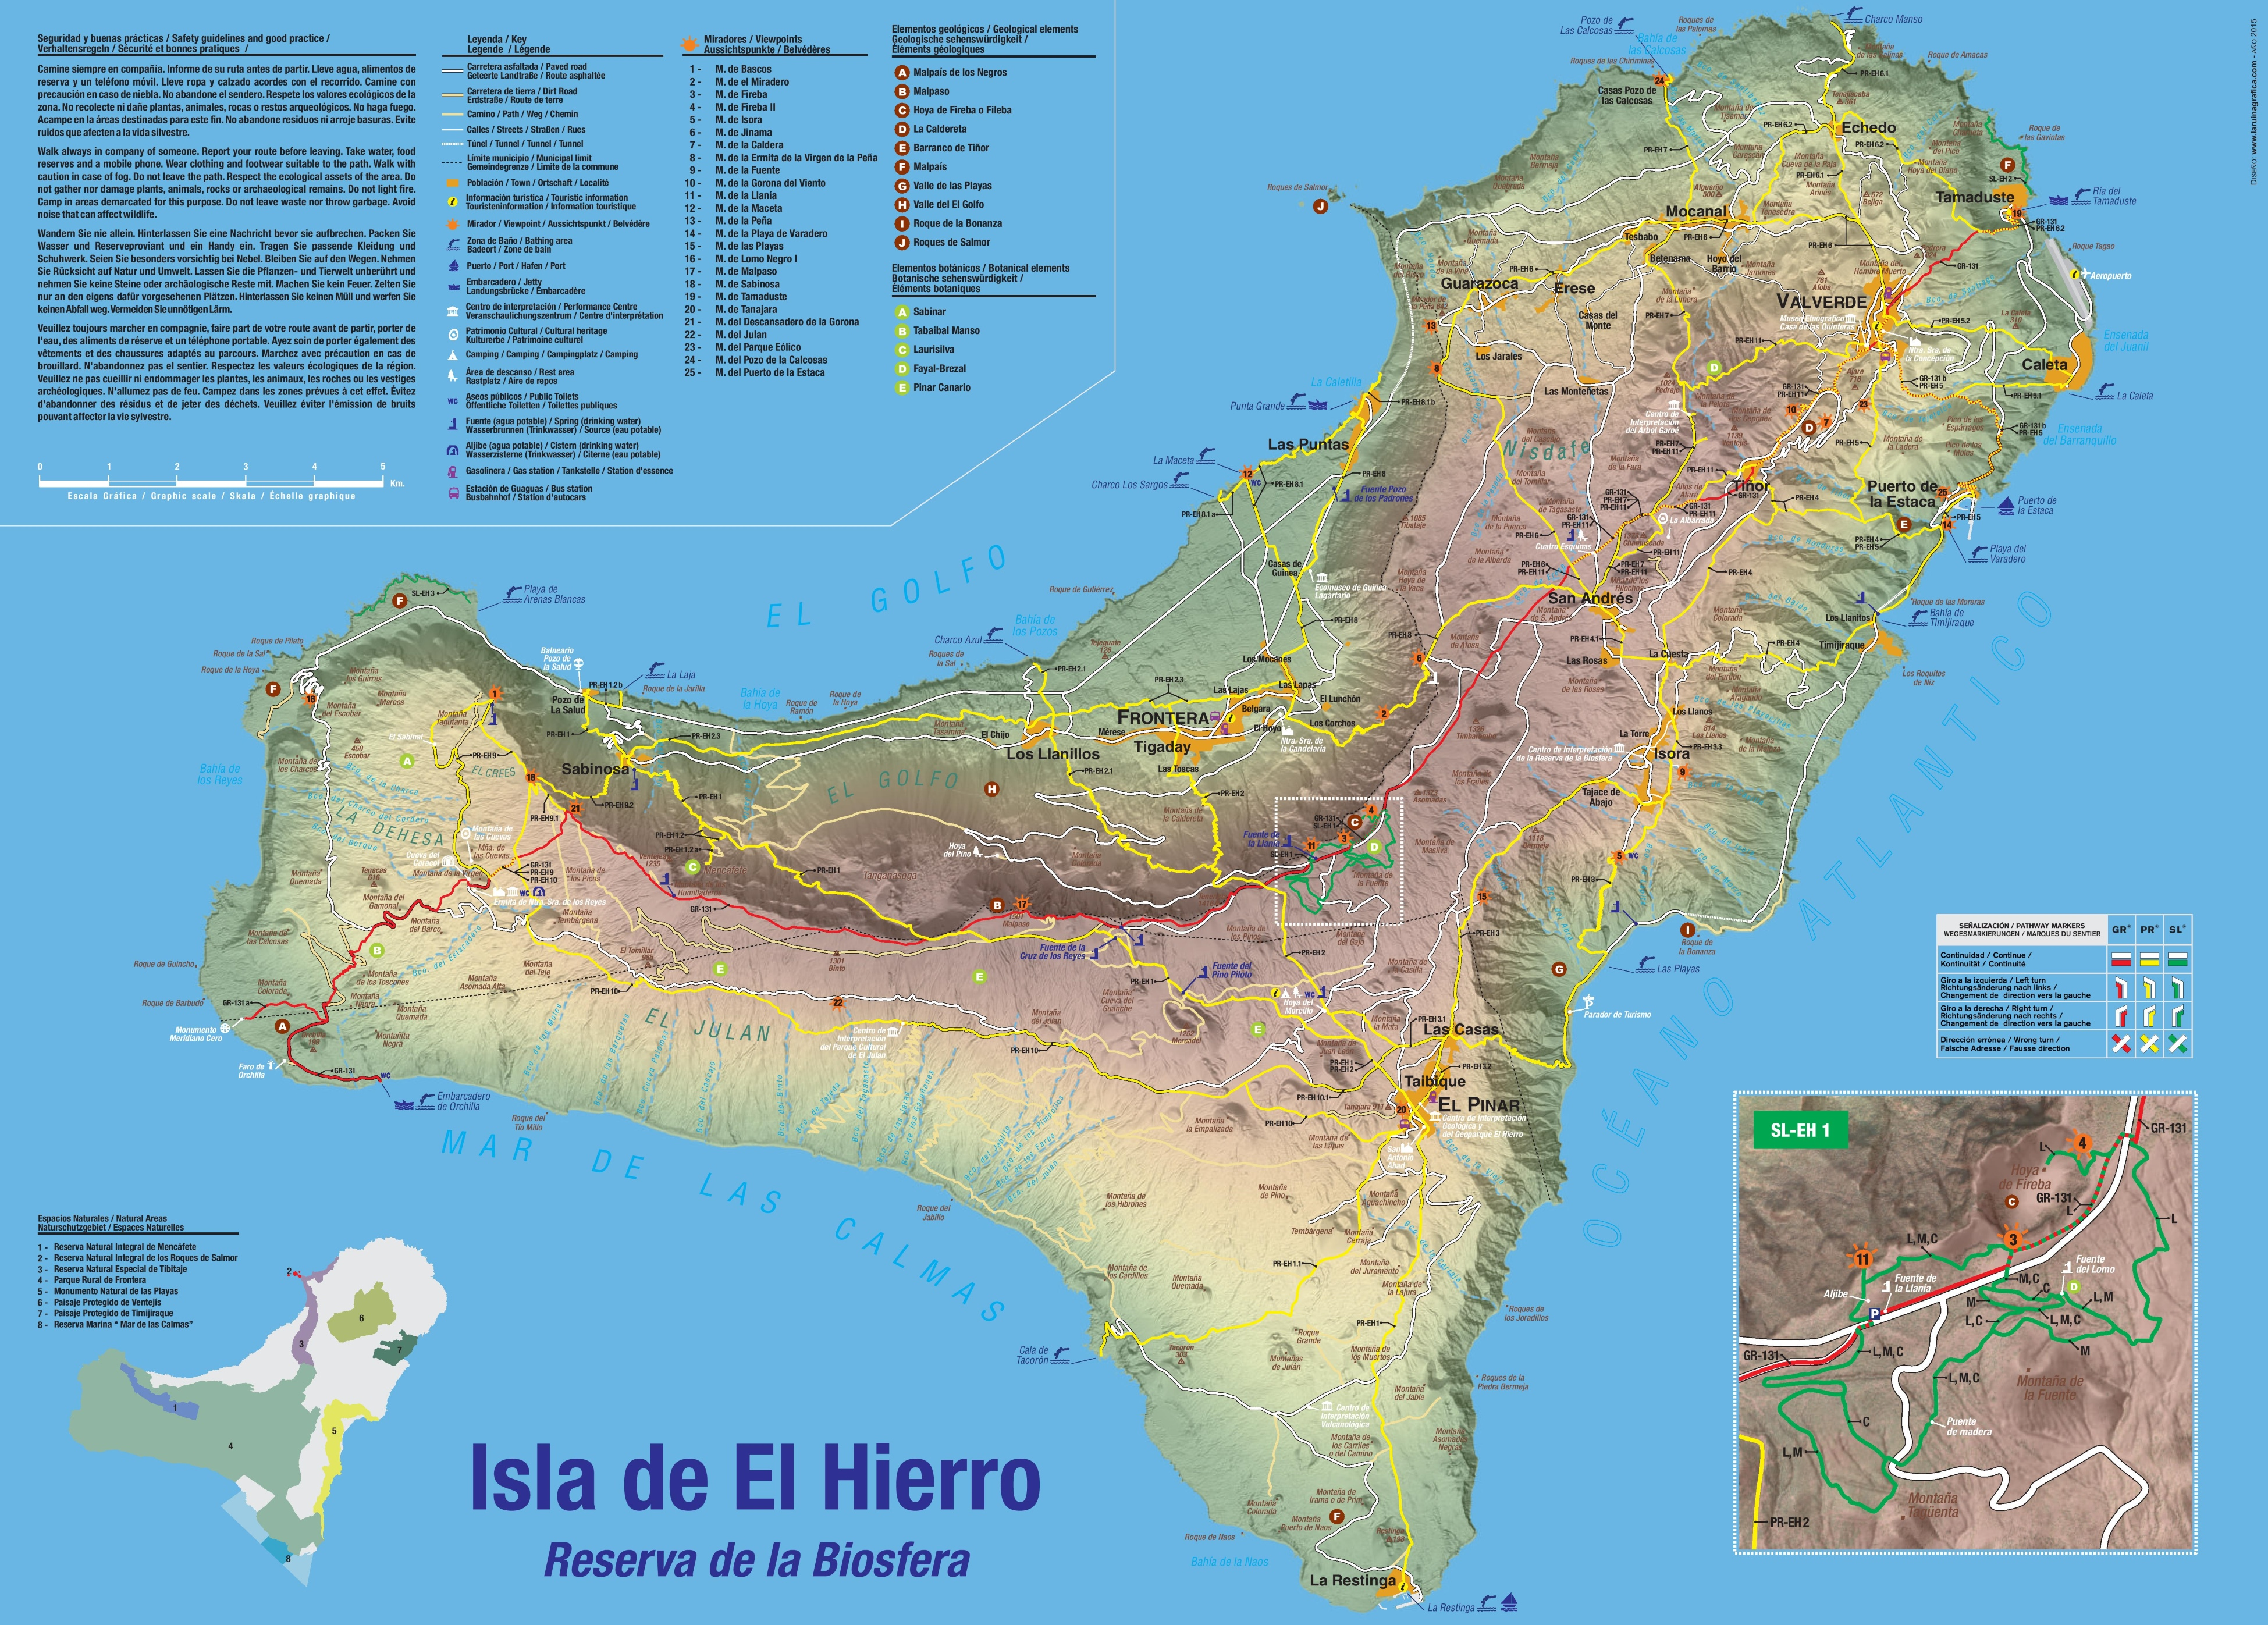 ibiza spain map with El Hierro Tourist Map on Photo Gallery besides Tenerife moreover Tenerife together with Large Detailed Map Of Fuerteventura With Beaches in addition Italy.